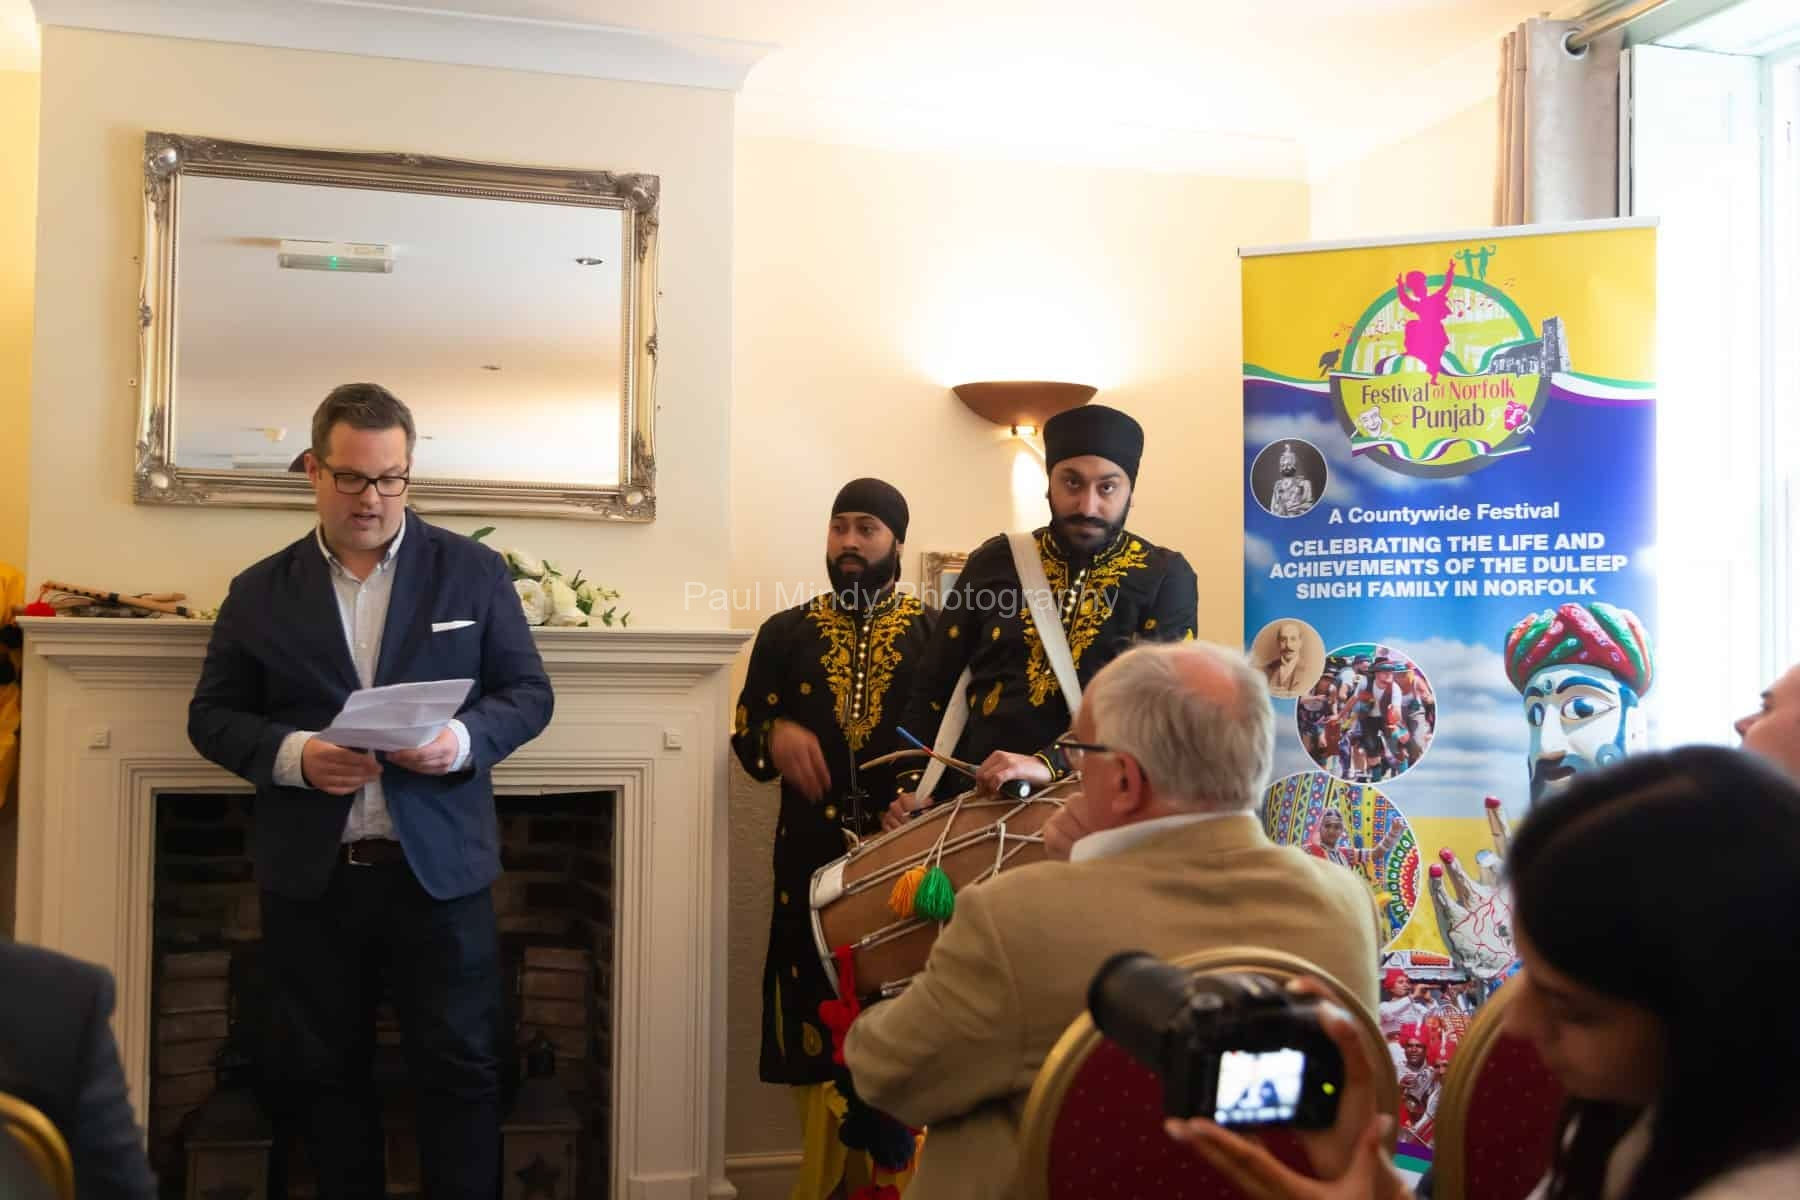 Punjabi-Festival-Launch-Liz-Truss-Thomas-Paine-14